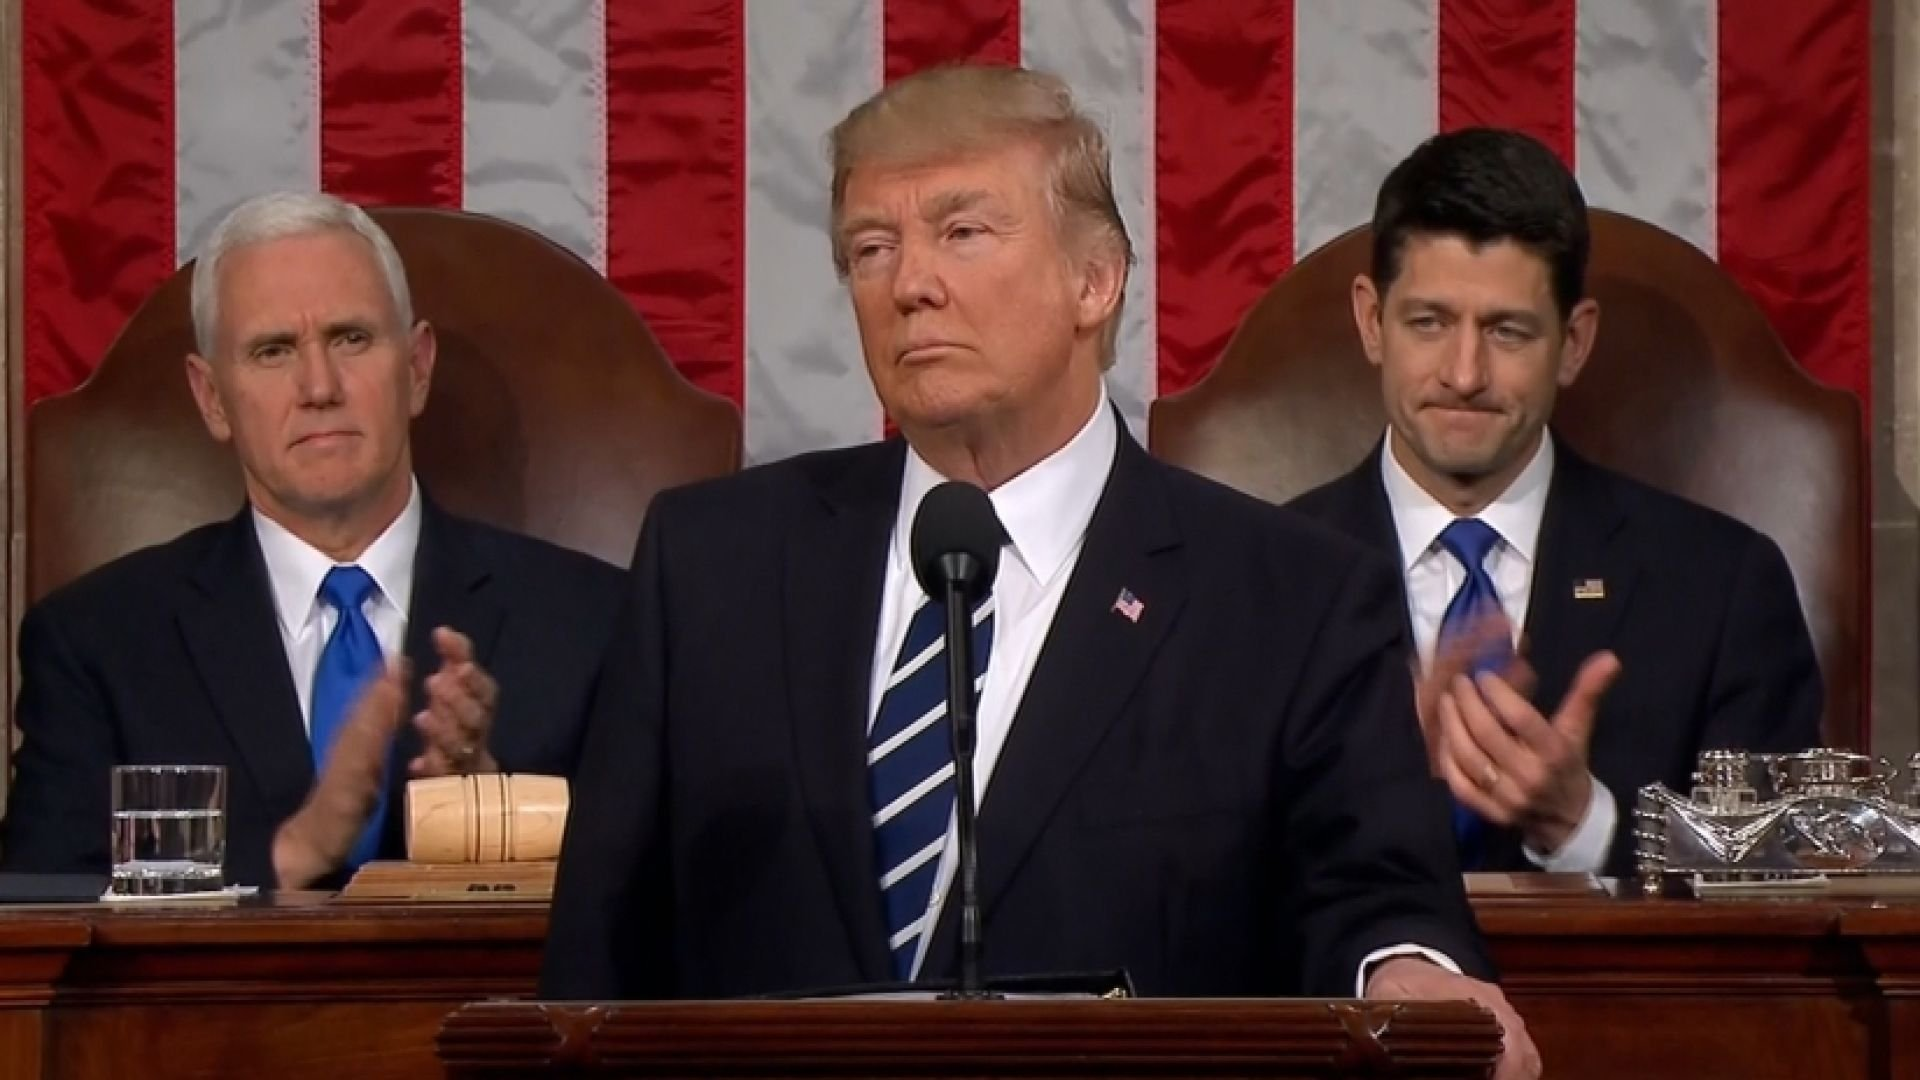 President Donald Trump delivers first address to joint session of Congress.